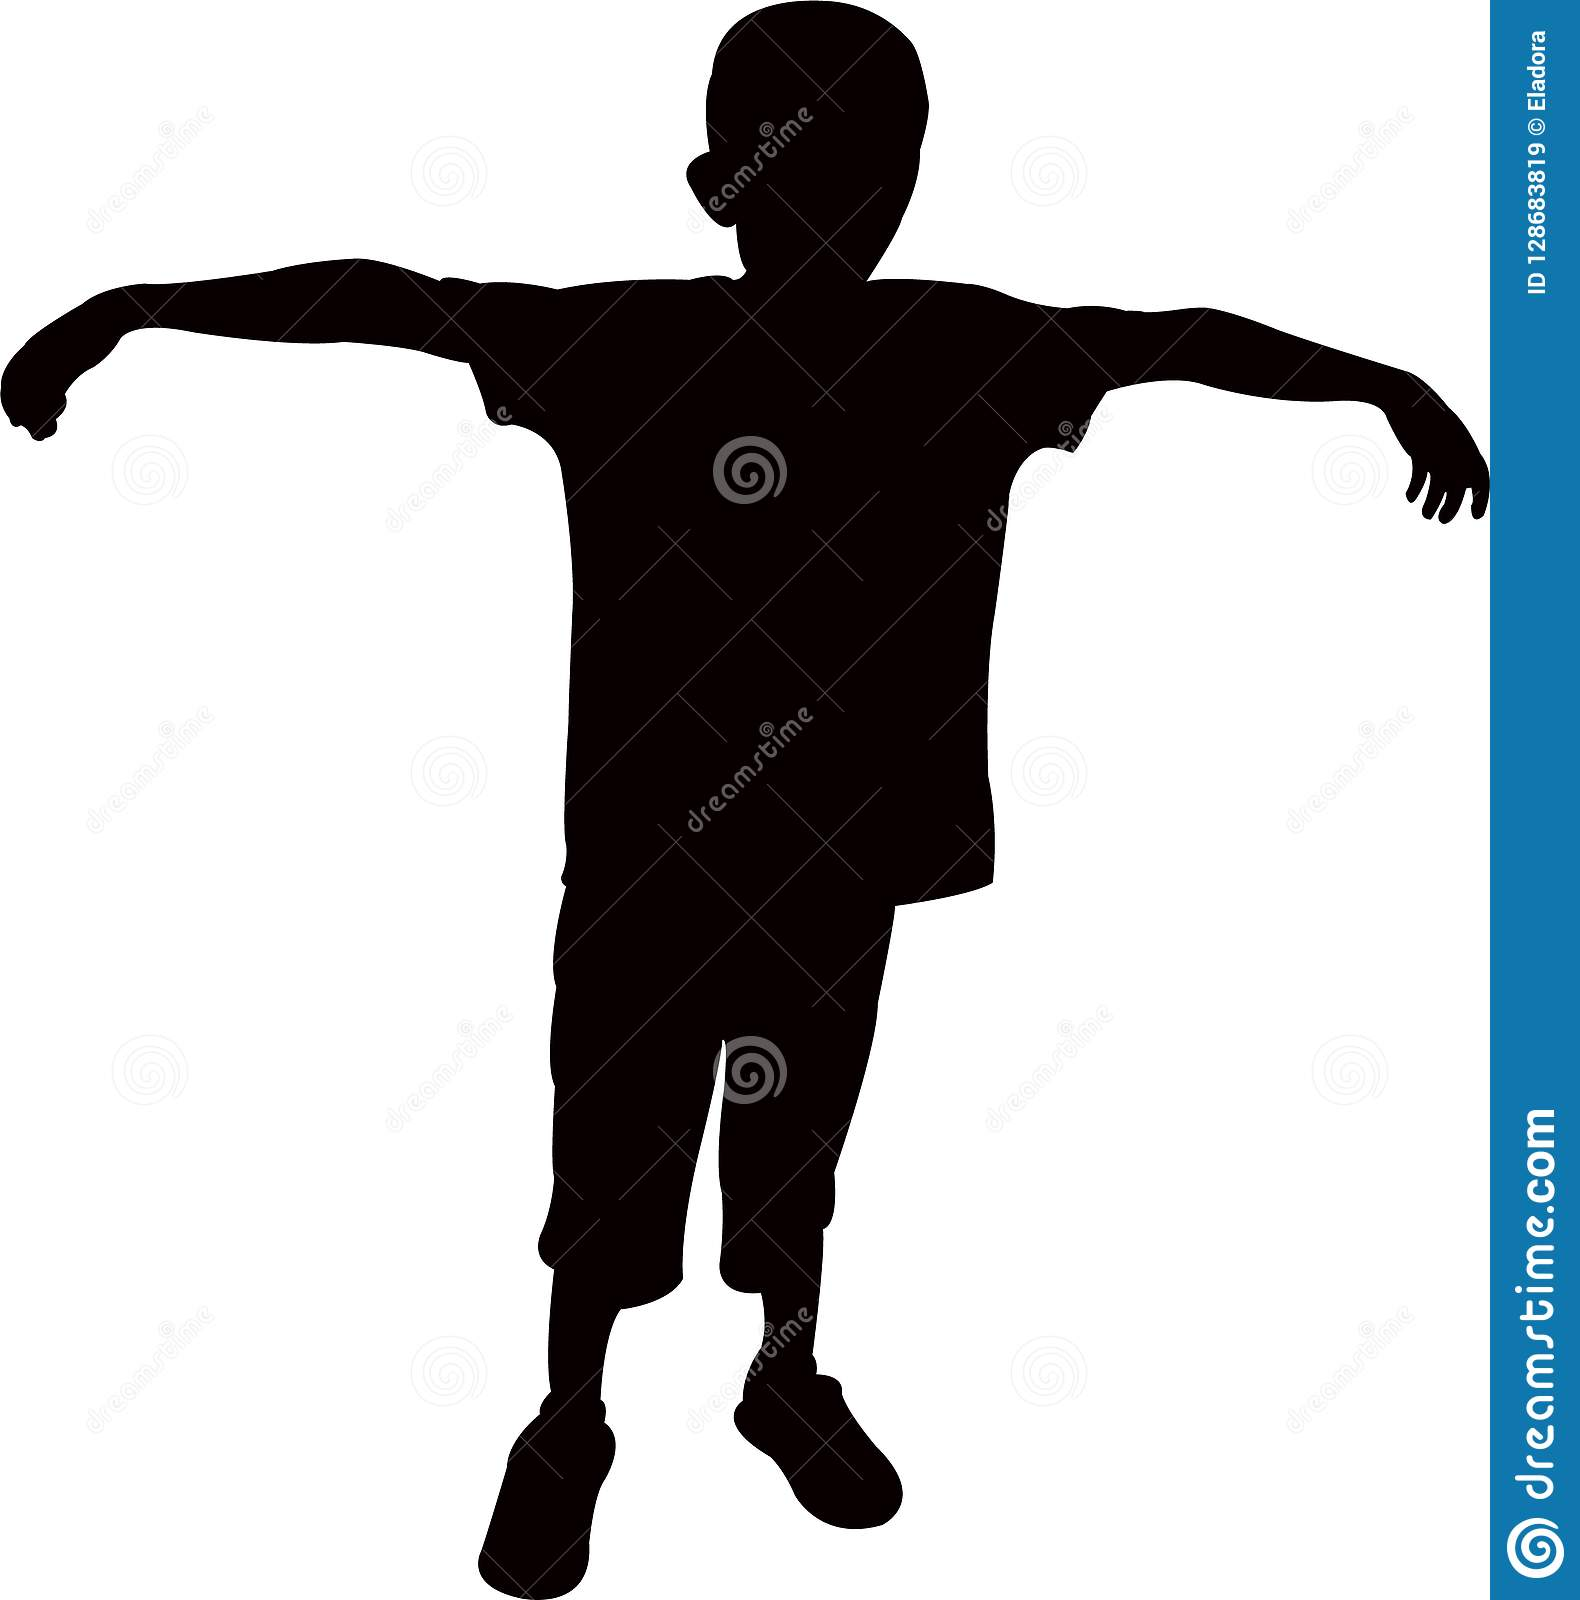 A Boy Lifting His Hands, Standing Body, Silhouette Vector ...